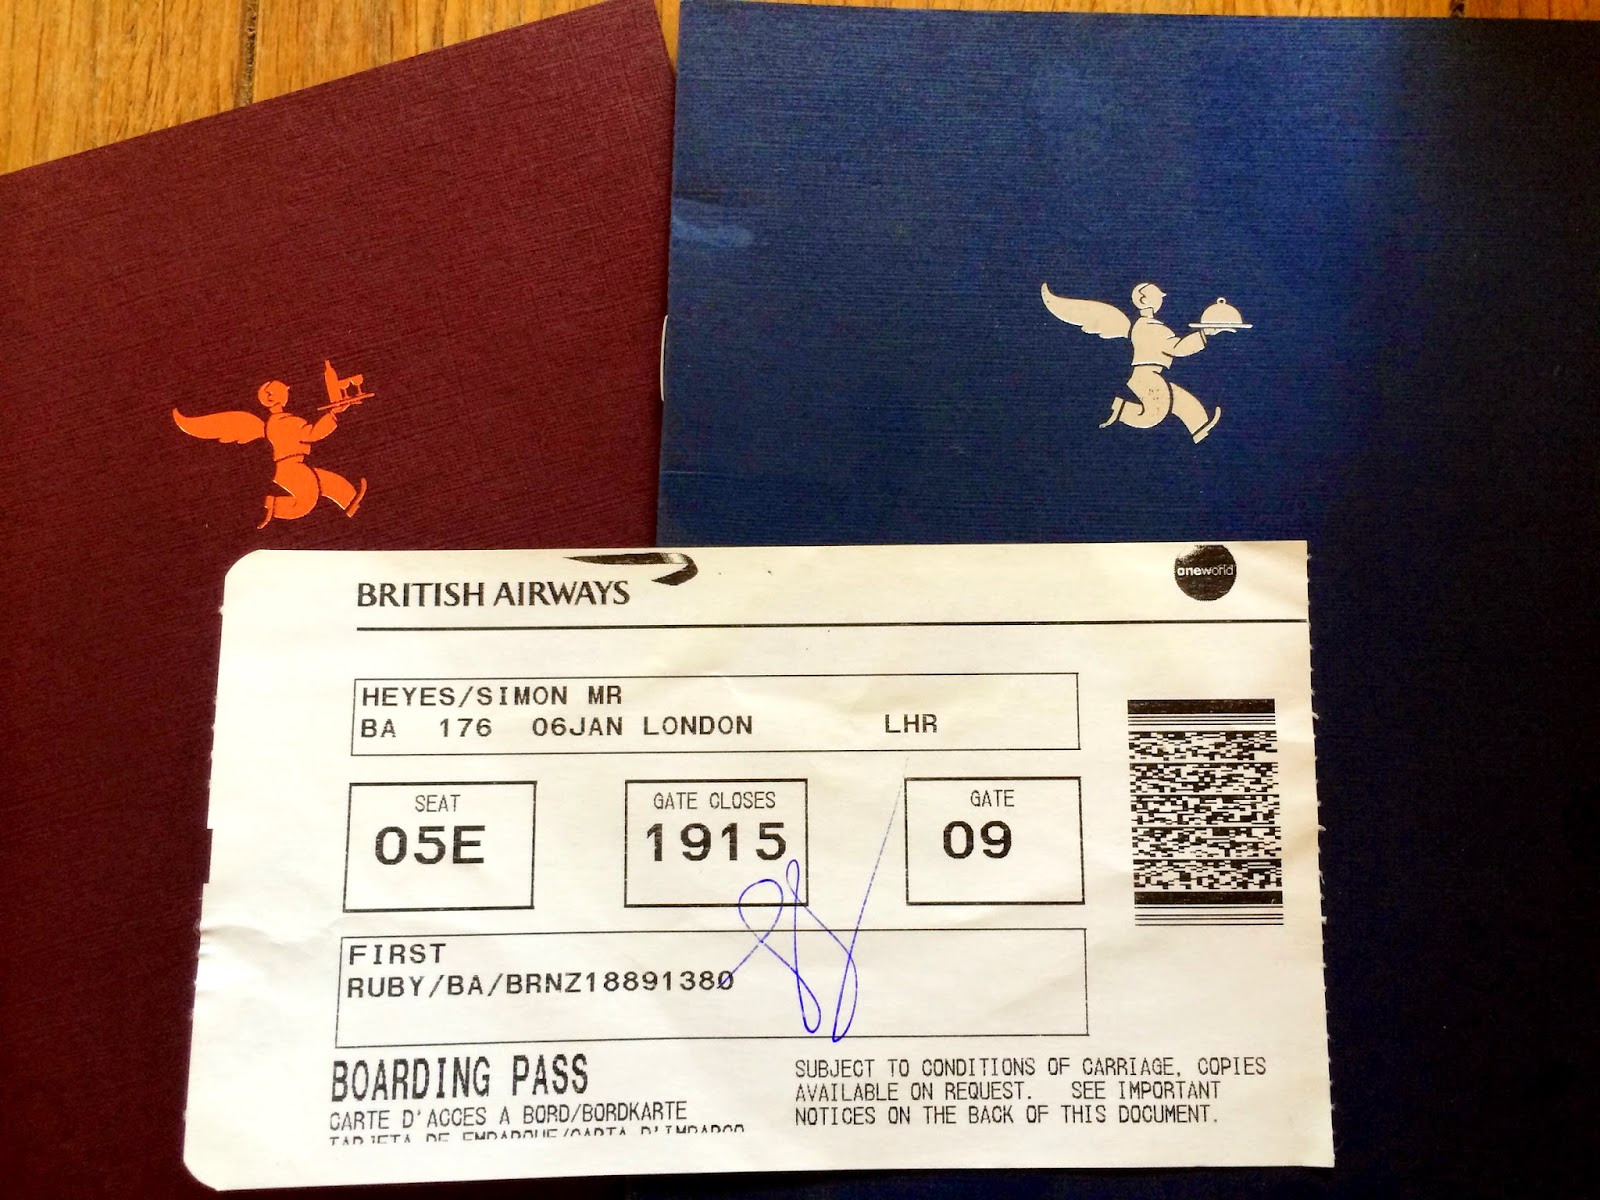 My BA First Class ticket, from New York to London Heathrow